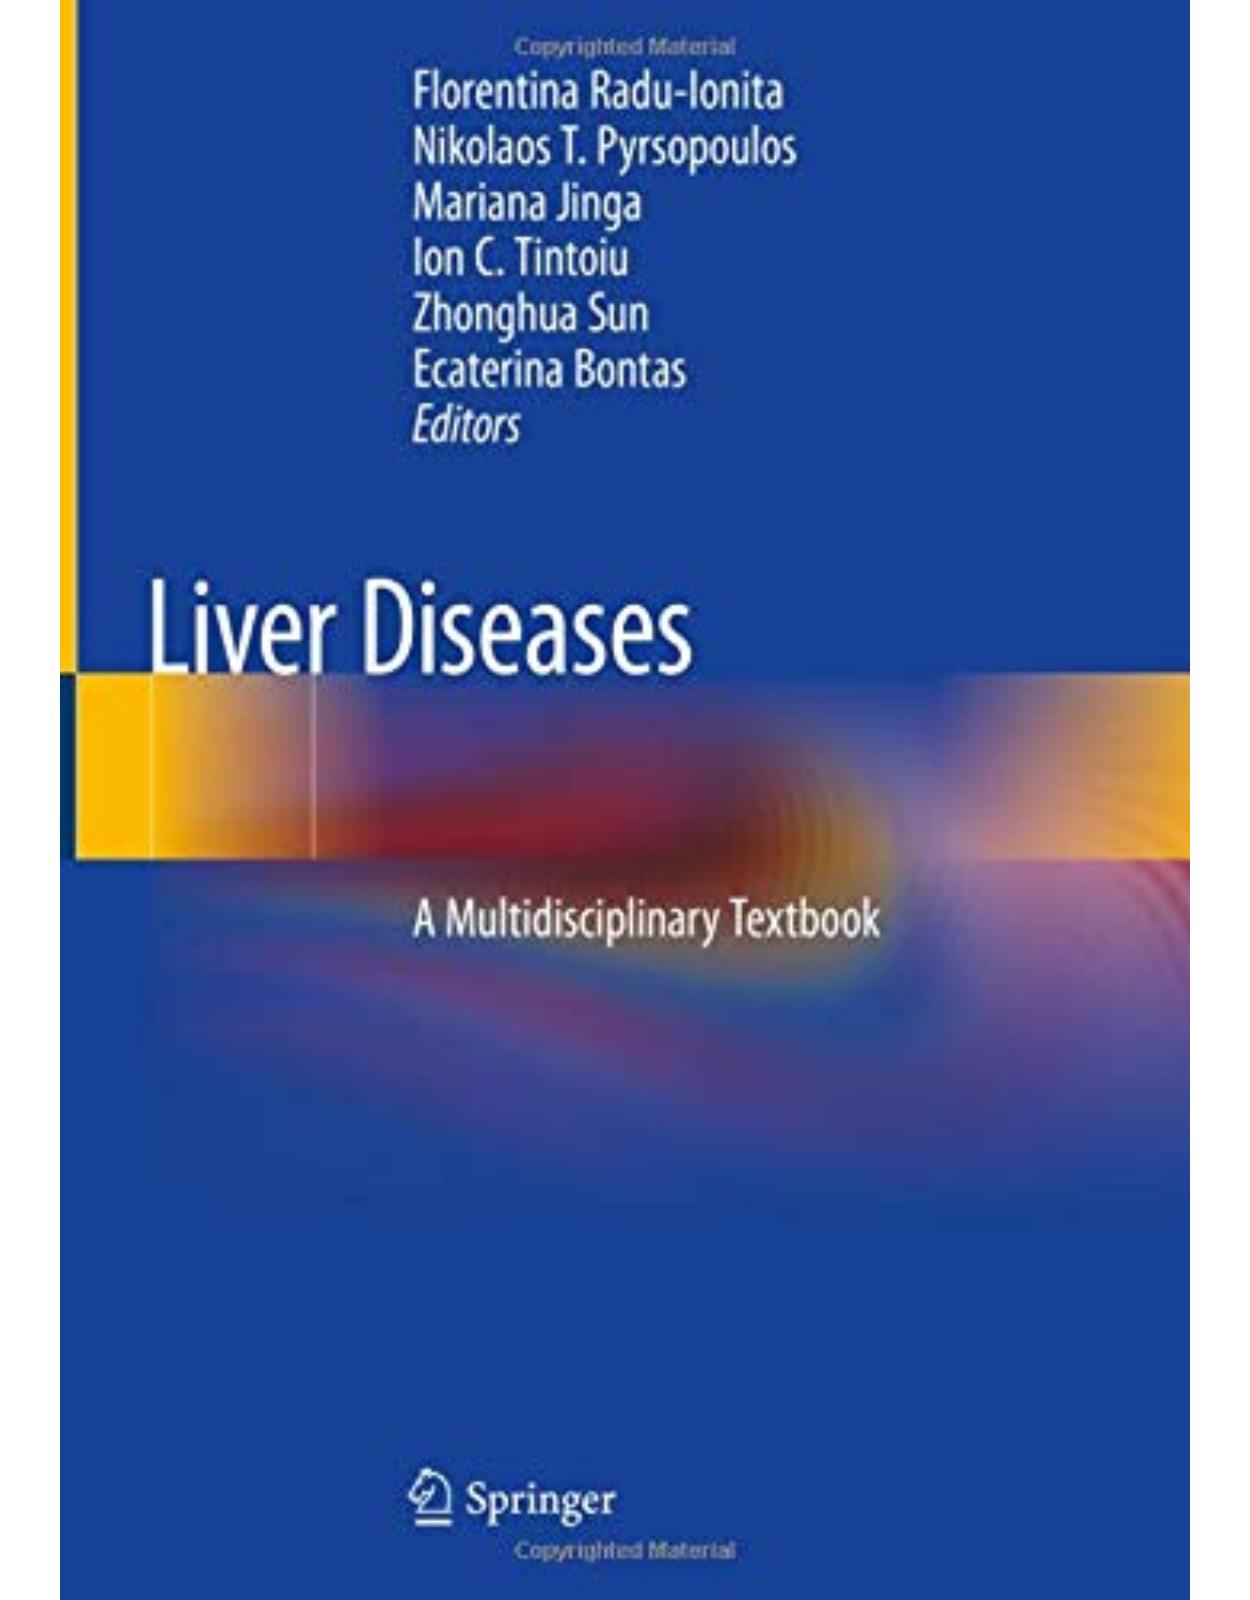 Liver Diseases: A Multidisciplinary Textbook